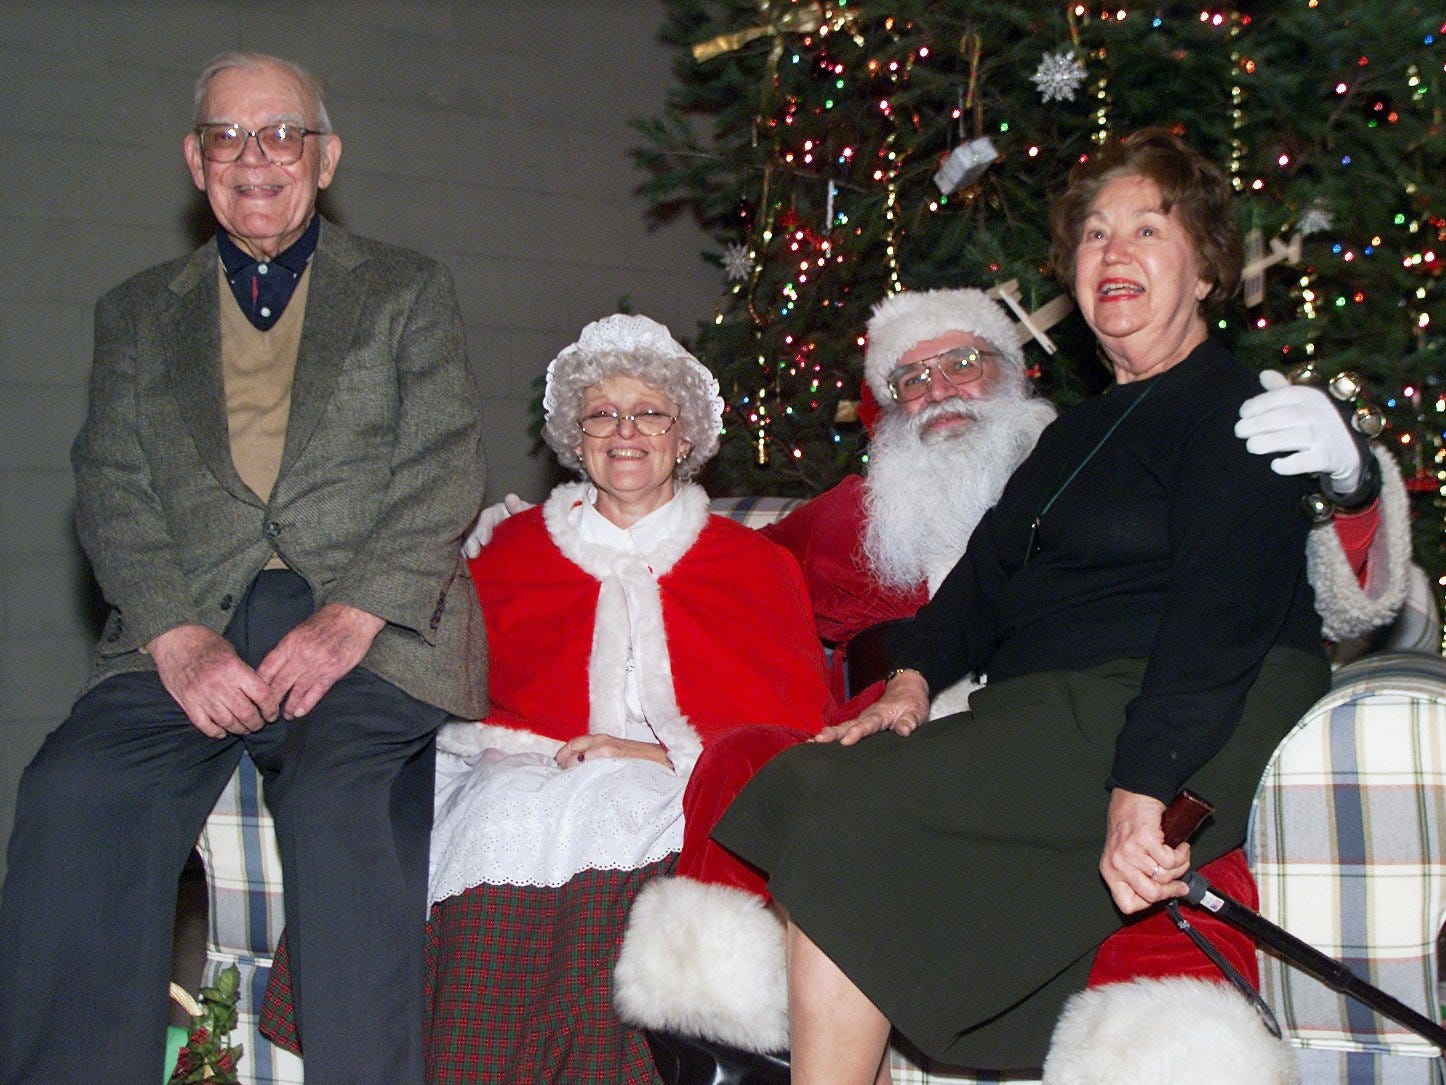 Paul and Virginia Schweizer of Big Flats pose for photos with Mr. and Mrs. Santa Claus during the Kitty Hawk Day open house at the National Soaring Museum in 1999.